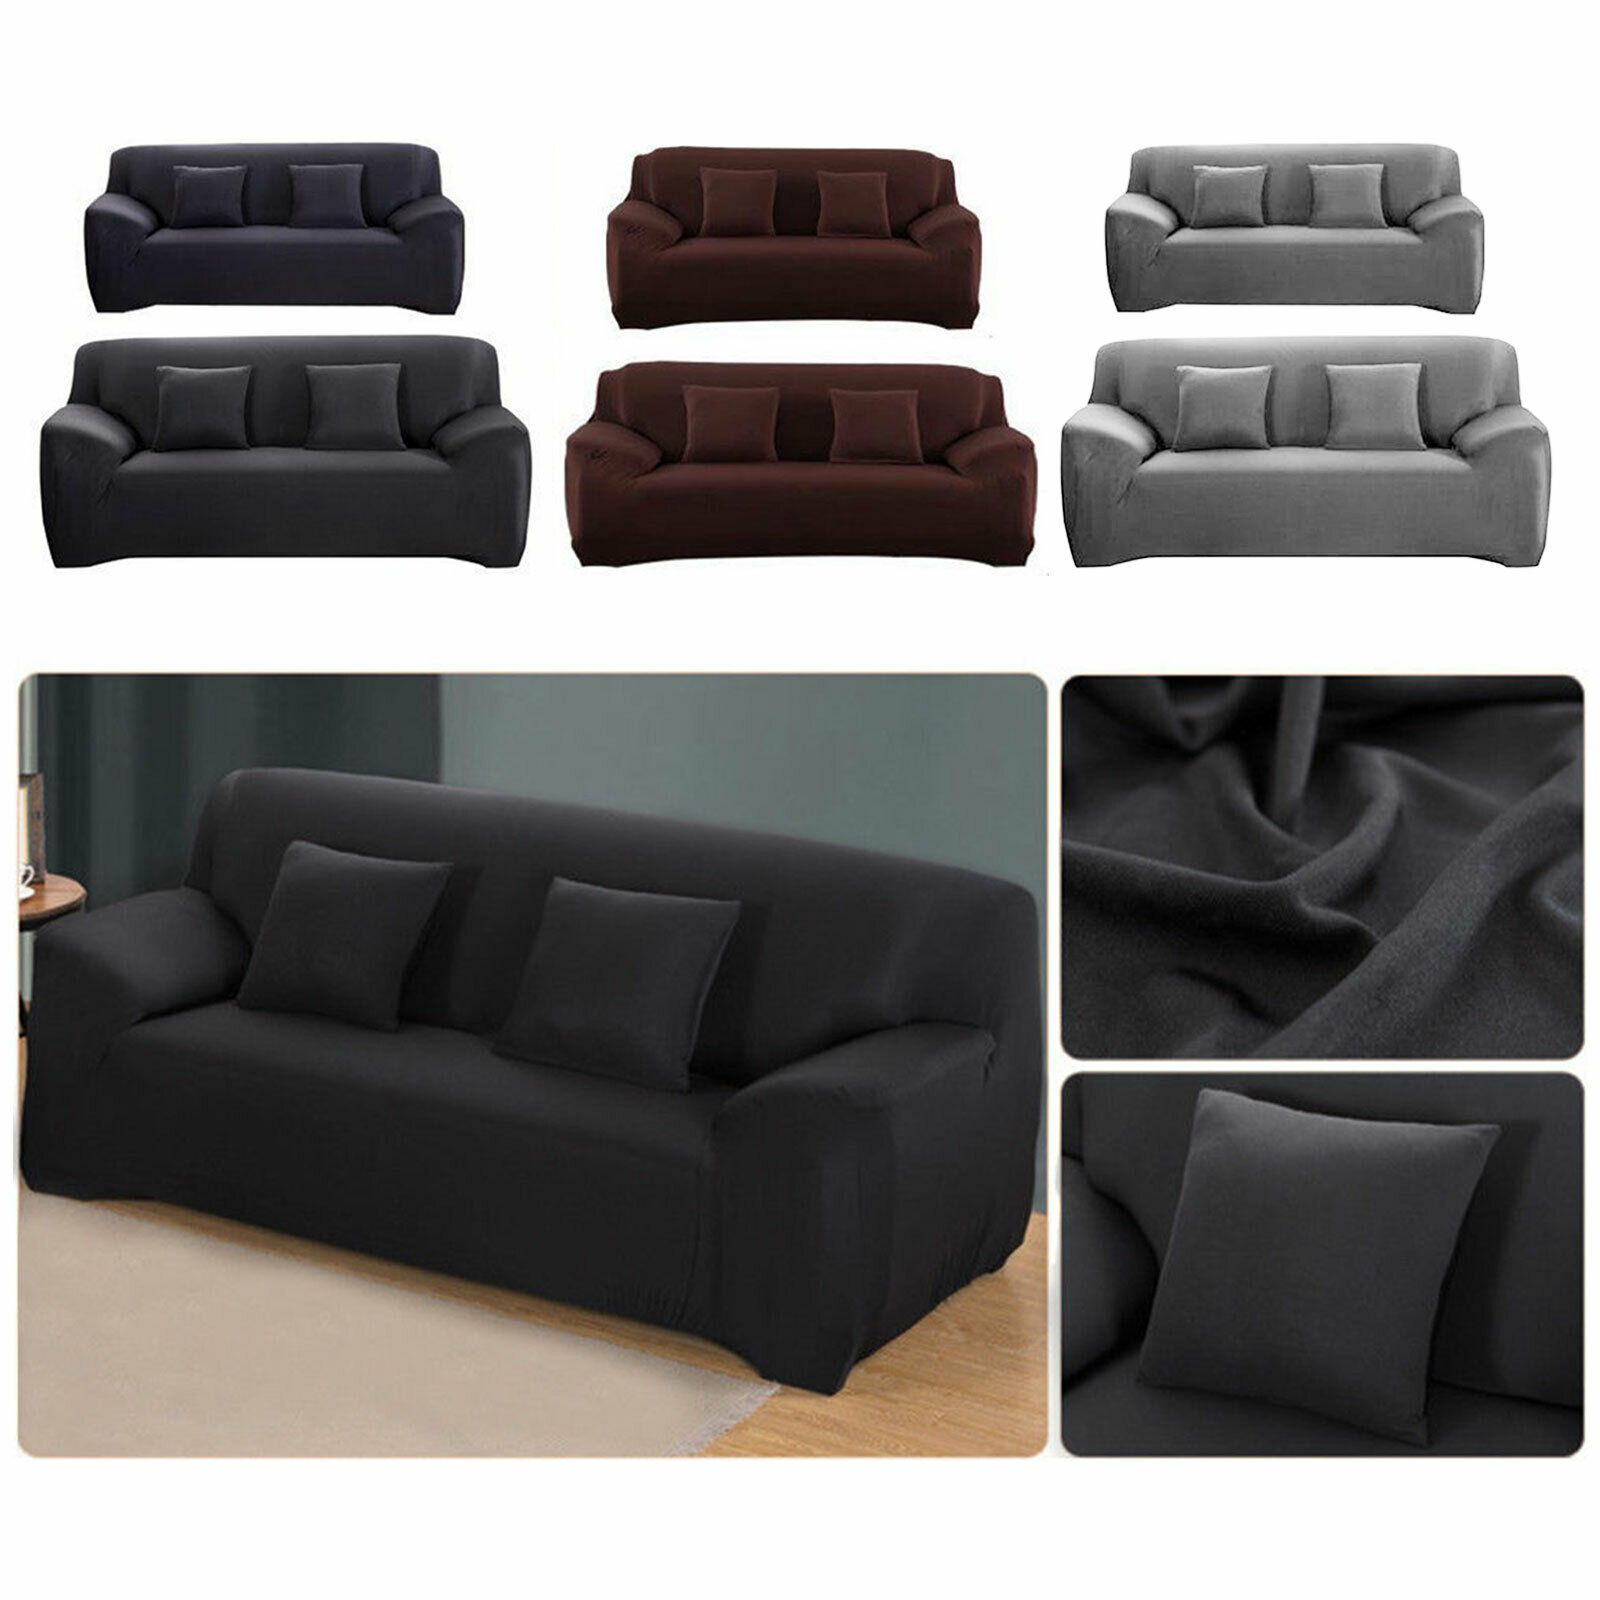 2/3 Seat Sofa Cover Couch Loveseat Slipcover Pet Dog Mat ...